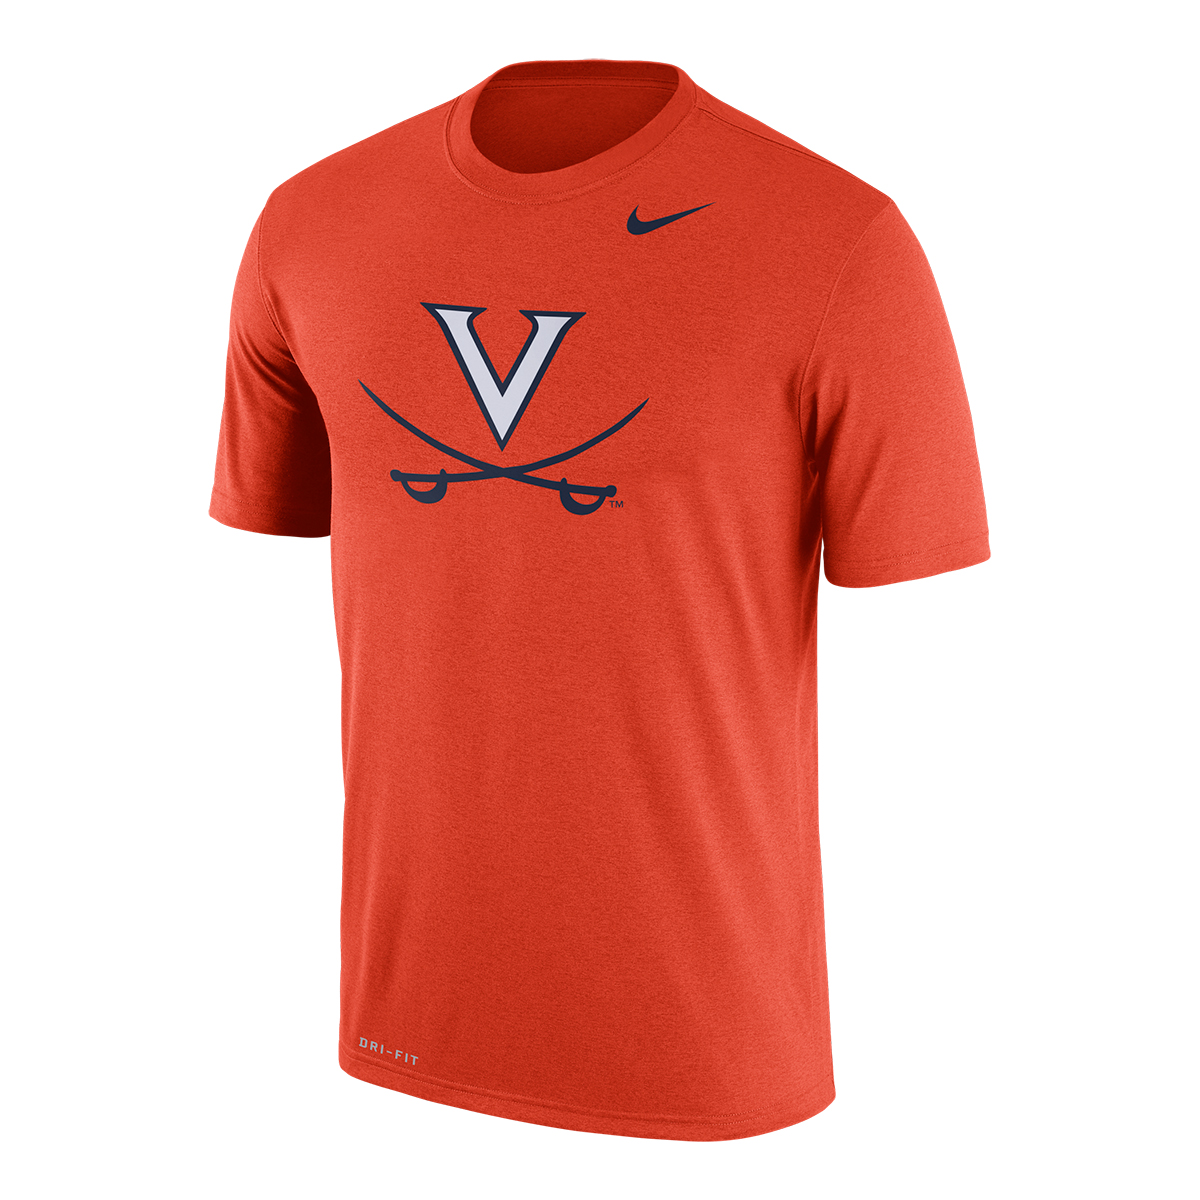 University of Virginia 2018 Nike Orange Dri-FIT T-shirt